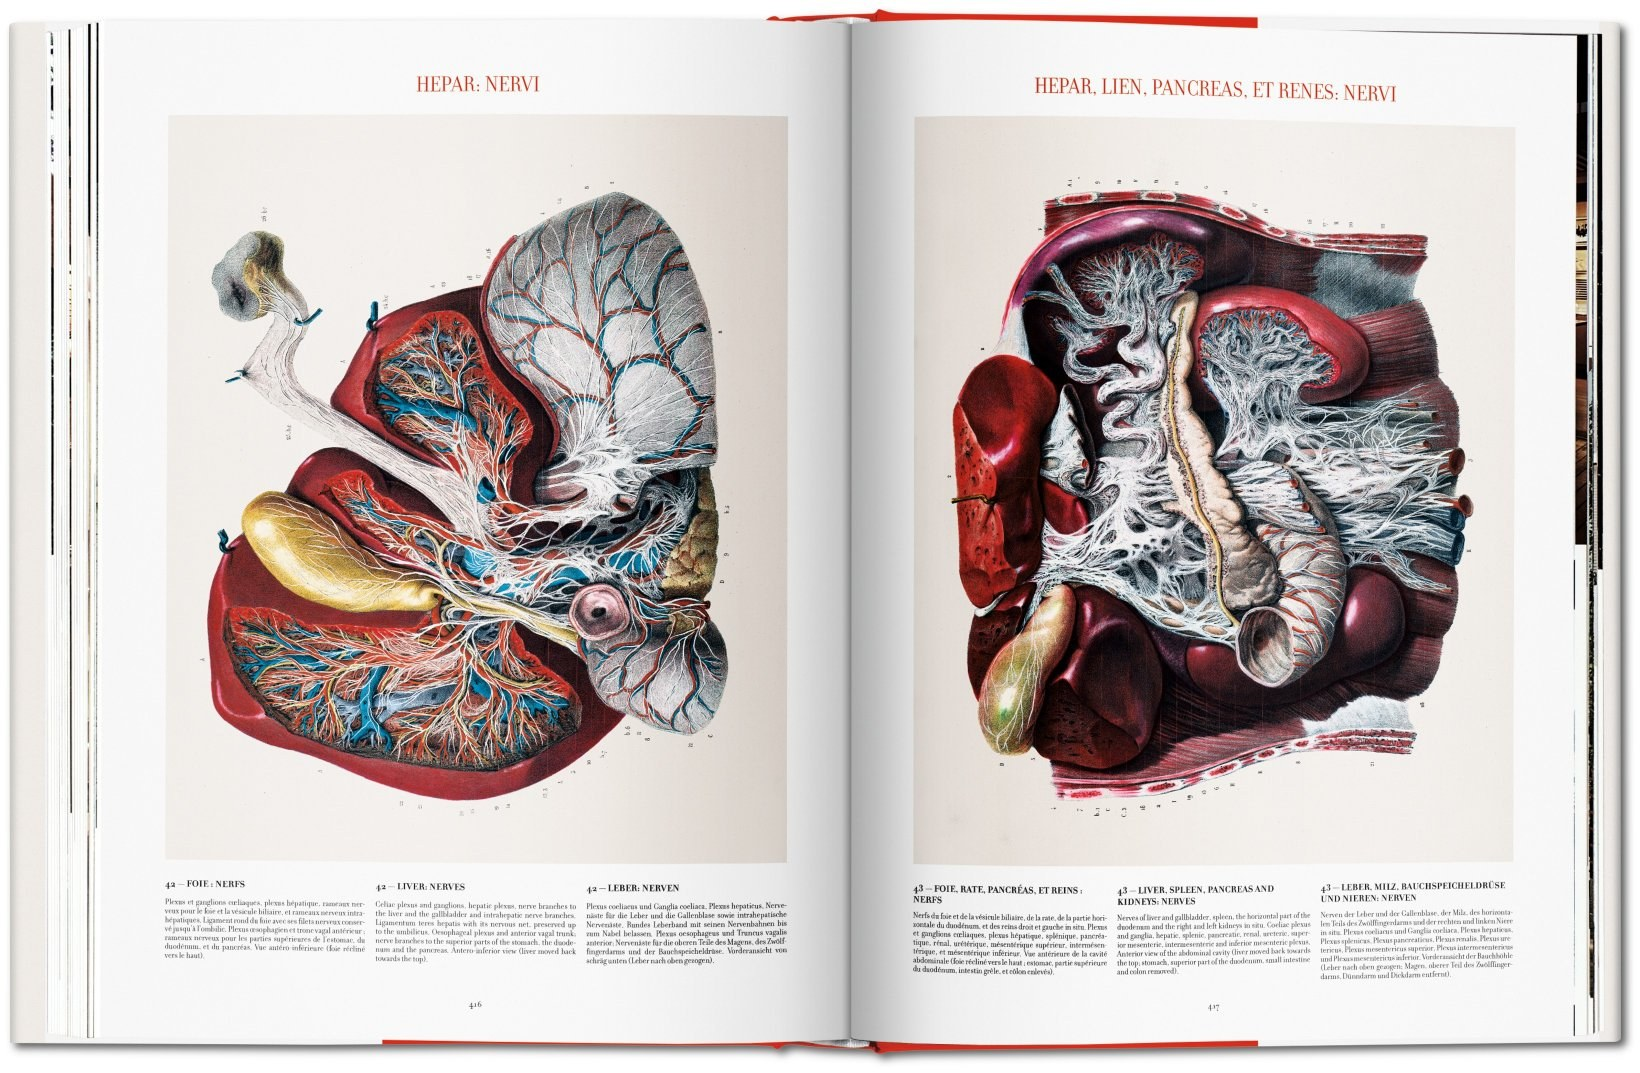 Atlas-of-Human-Anatomy-and-Surgery